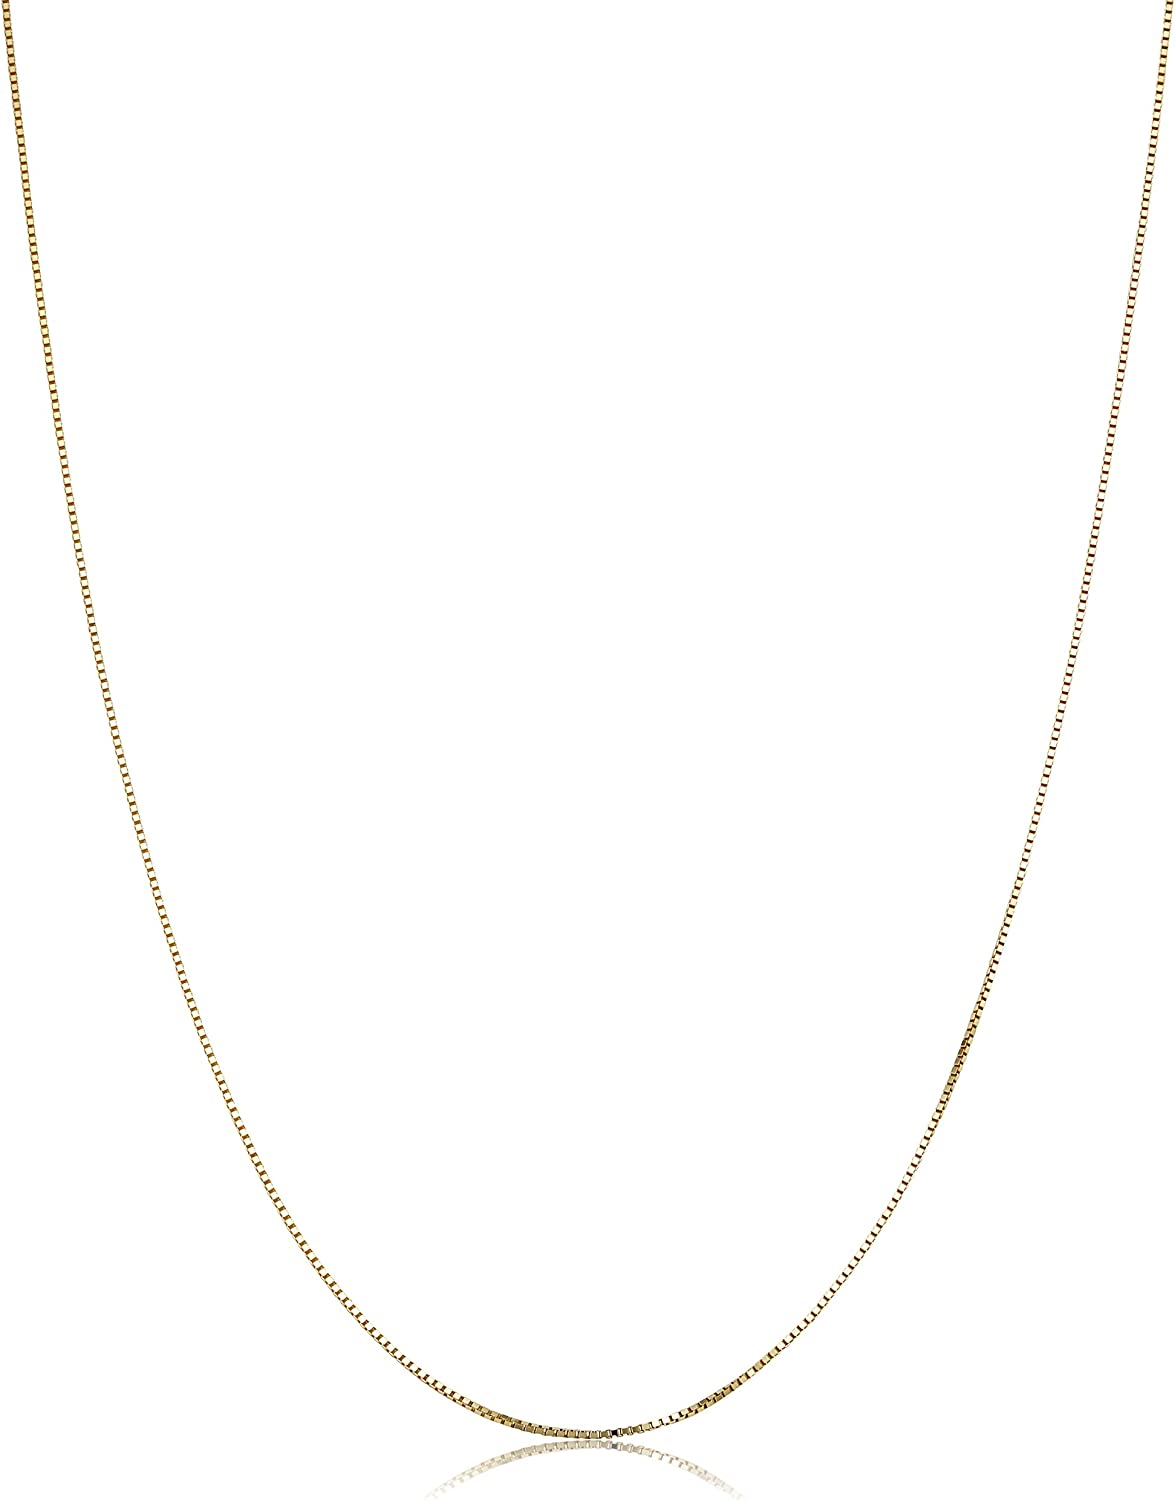 KoolJewelry Solid 14k Yellow Gold Venetian Box Chain Necklace for Women (0.6 mm, 0.7 mm, 0.8 mm or 1 mm) - Thin and Lightweight